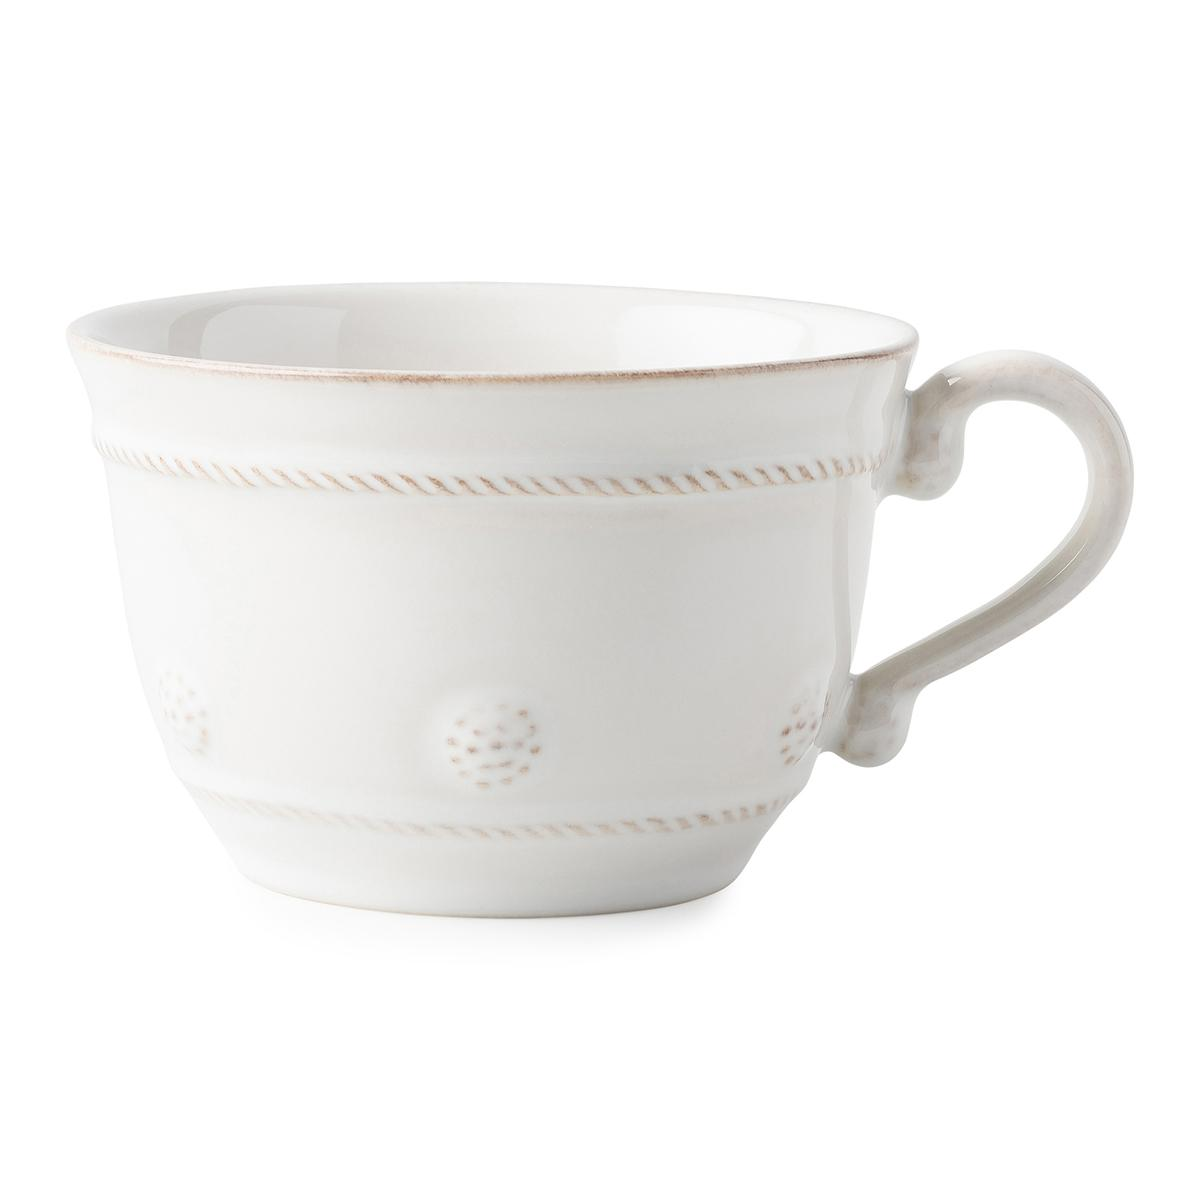 Berry & Thread Whitewash Tea Cup